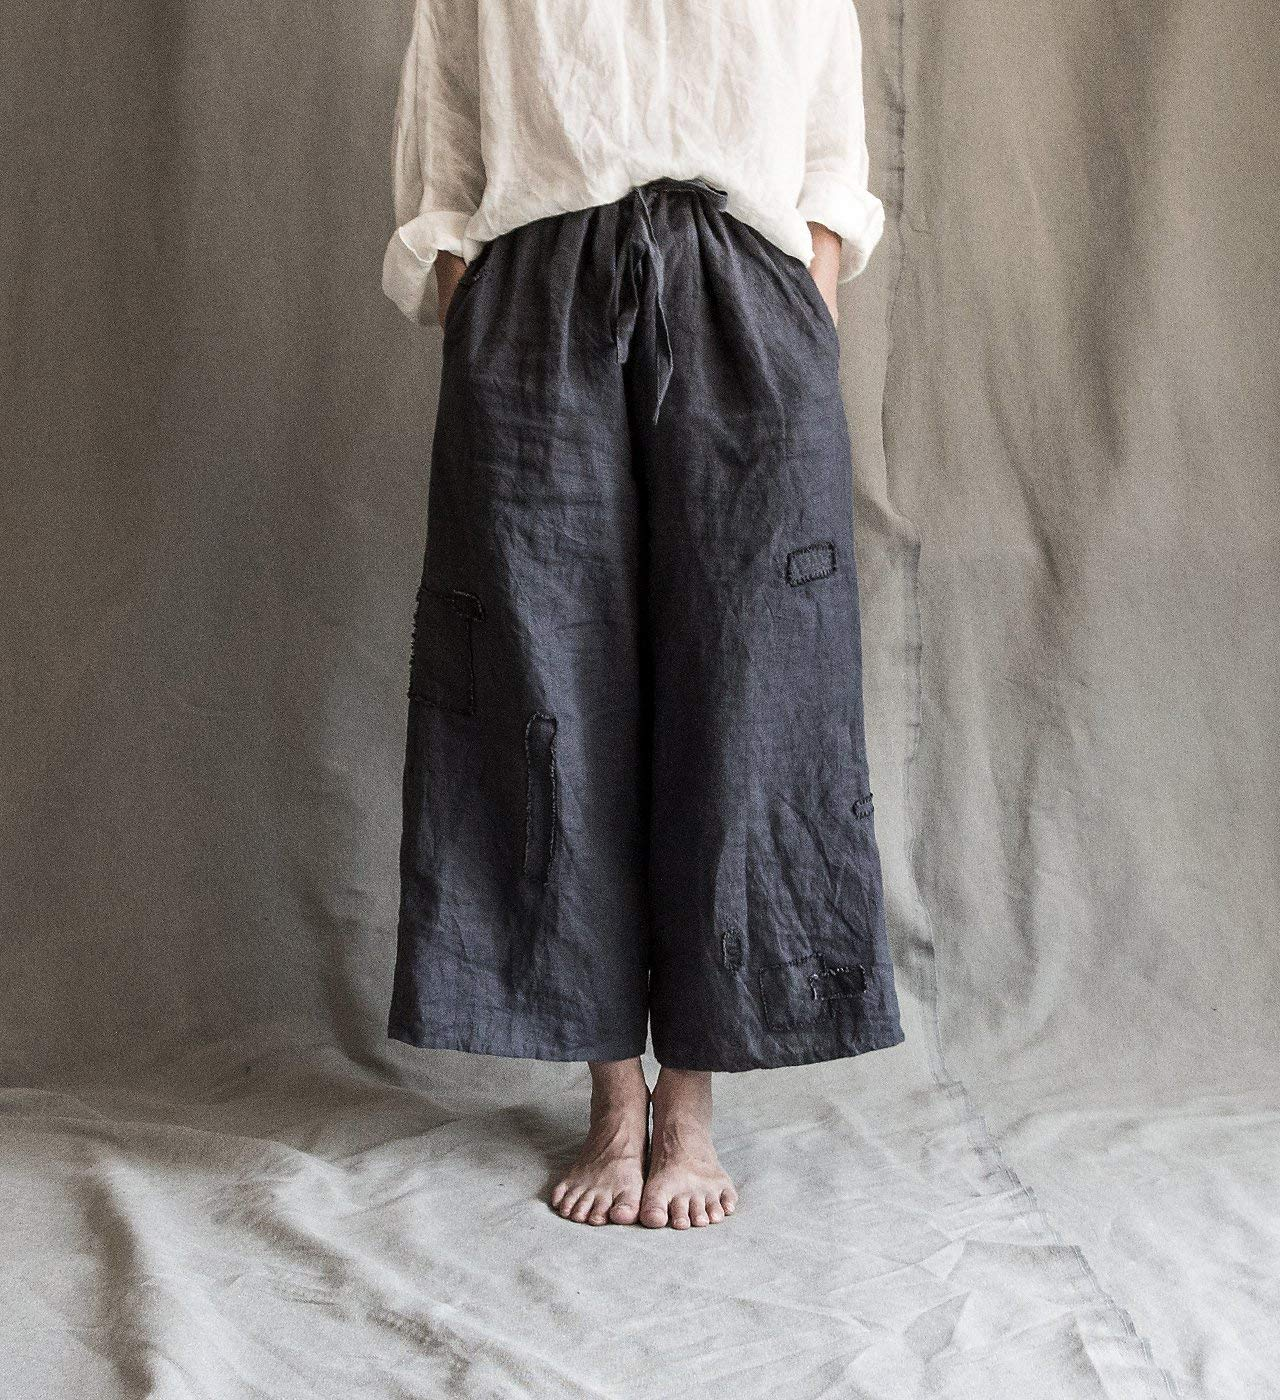 138502967427 Top2  Linen pants linen trousers linen womens clothing wide linen pants  linen culottes short linen pants summer linen pants patched linen pants